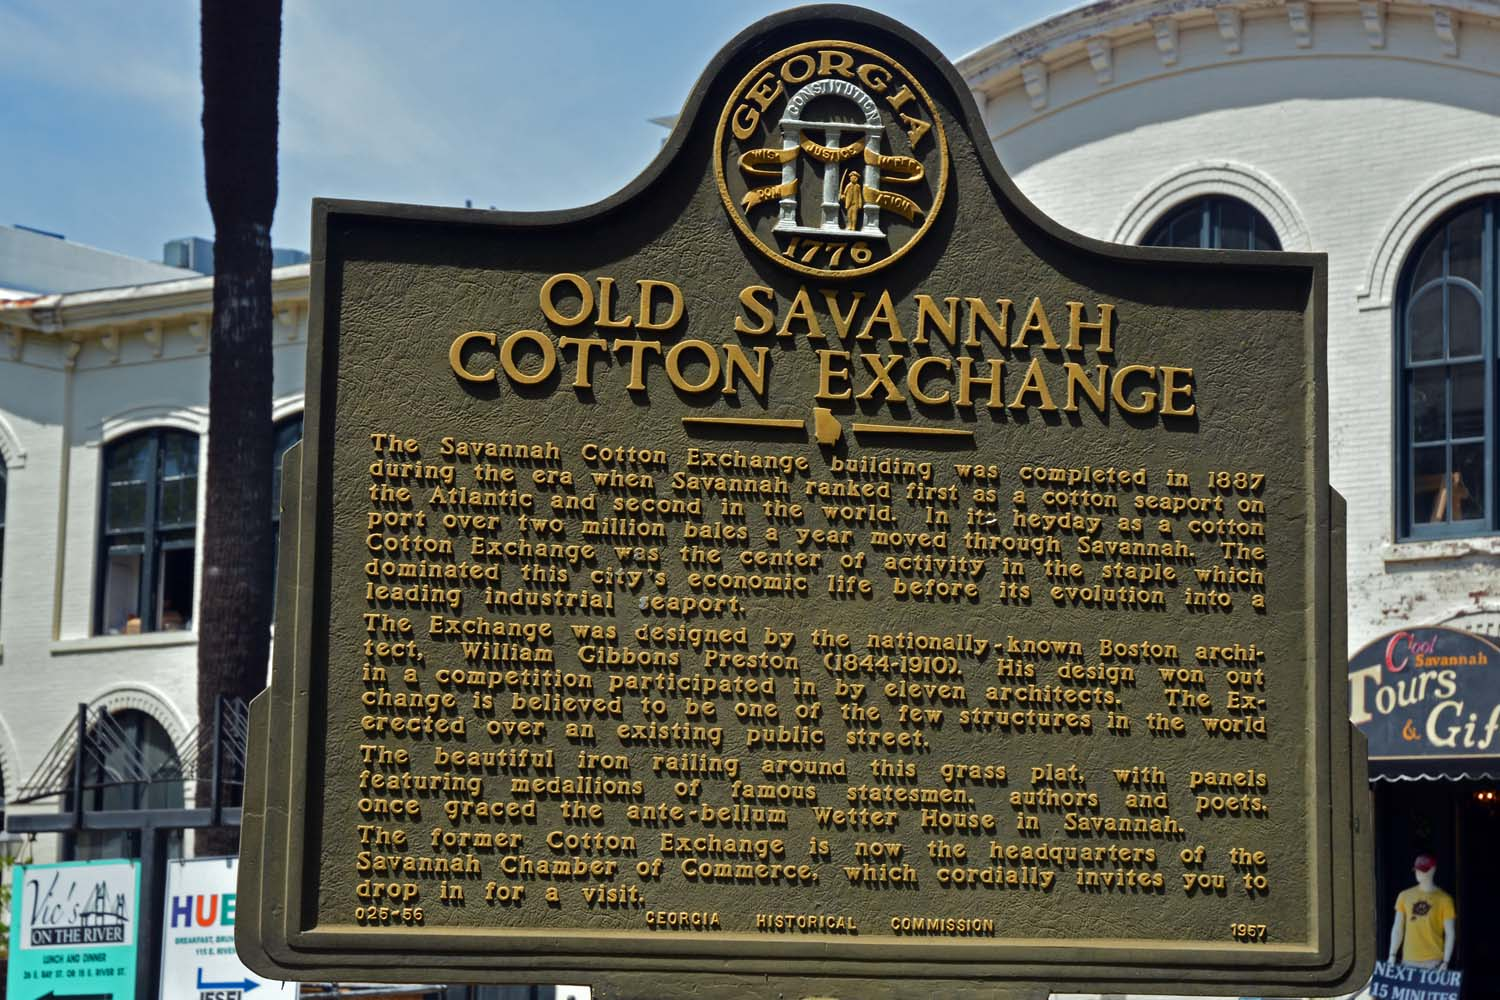 Savannah was once the King of Cotton